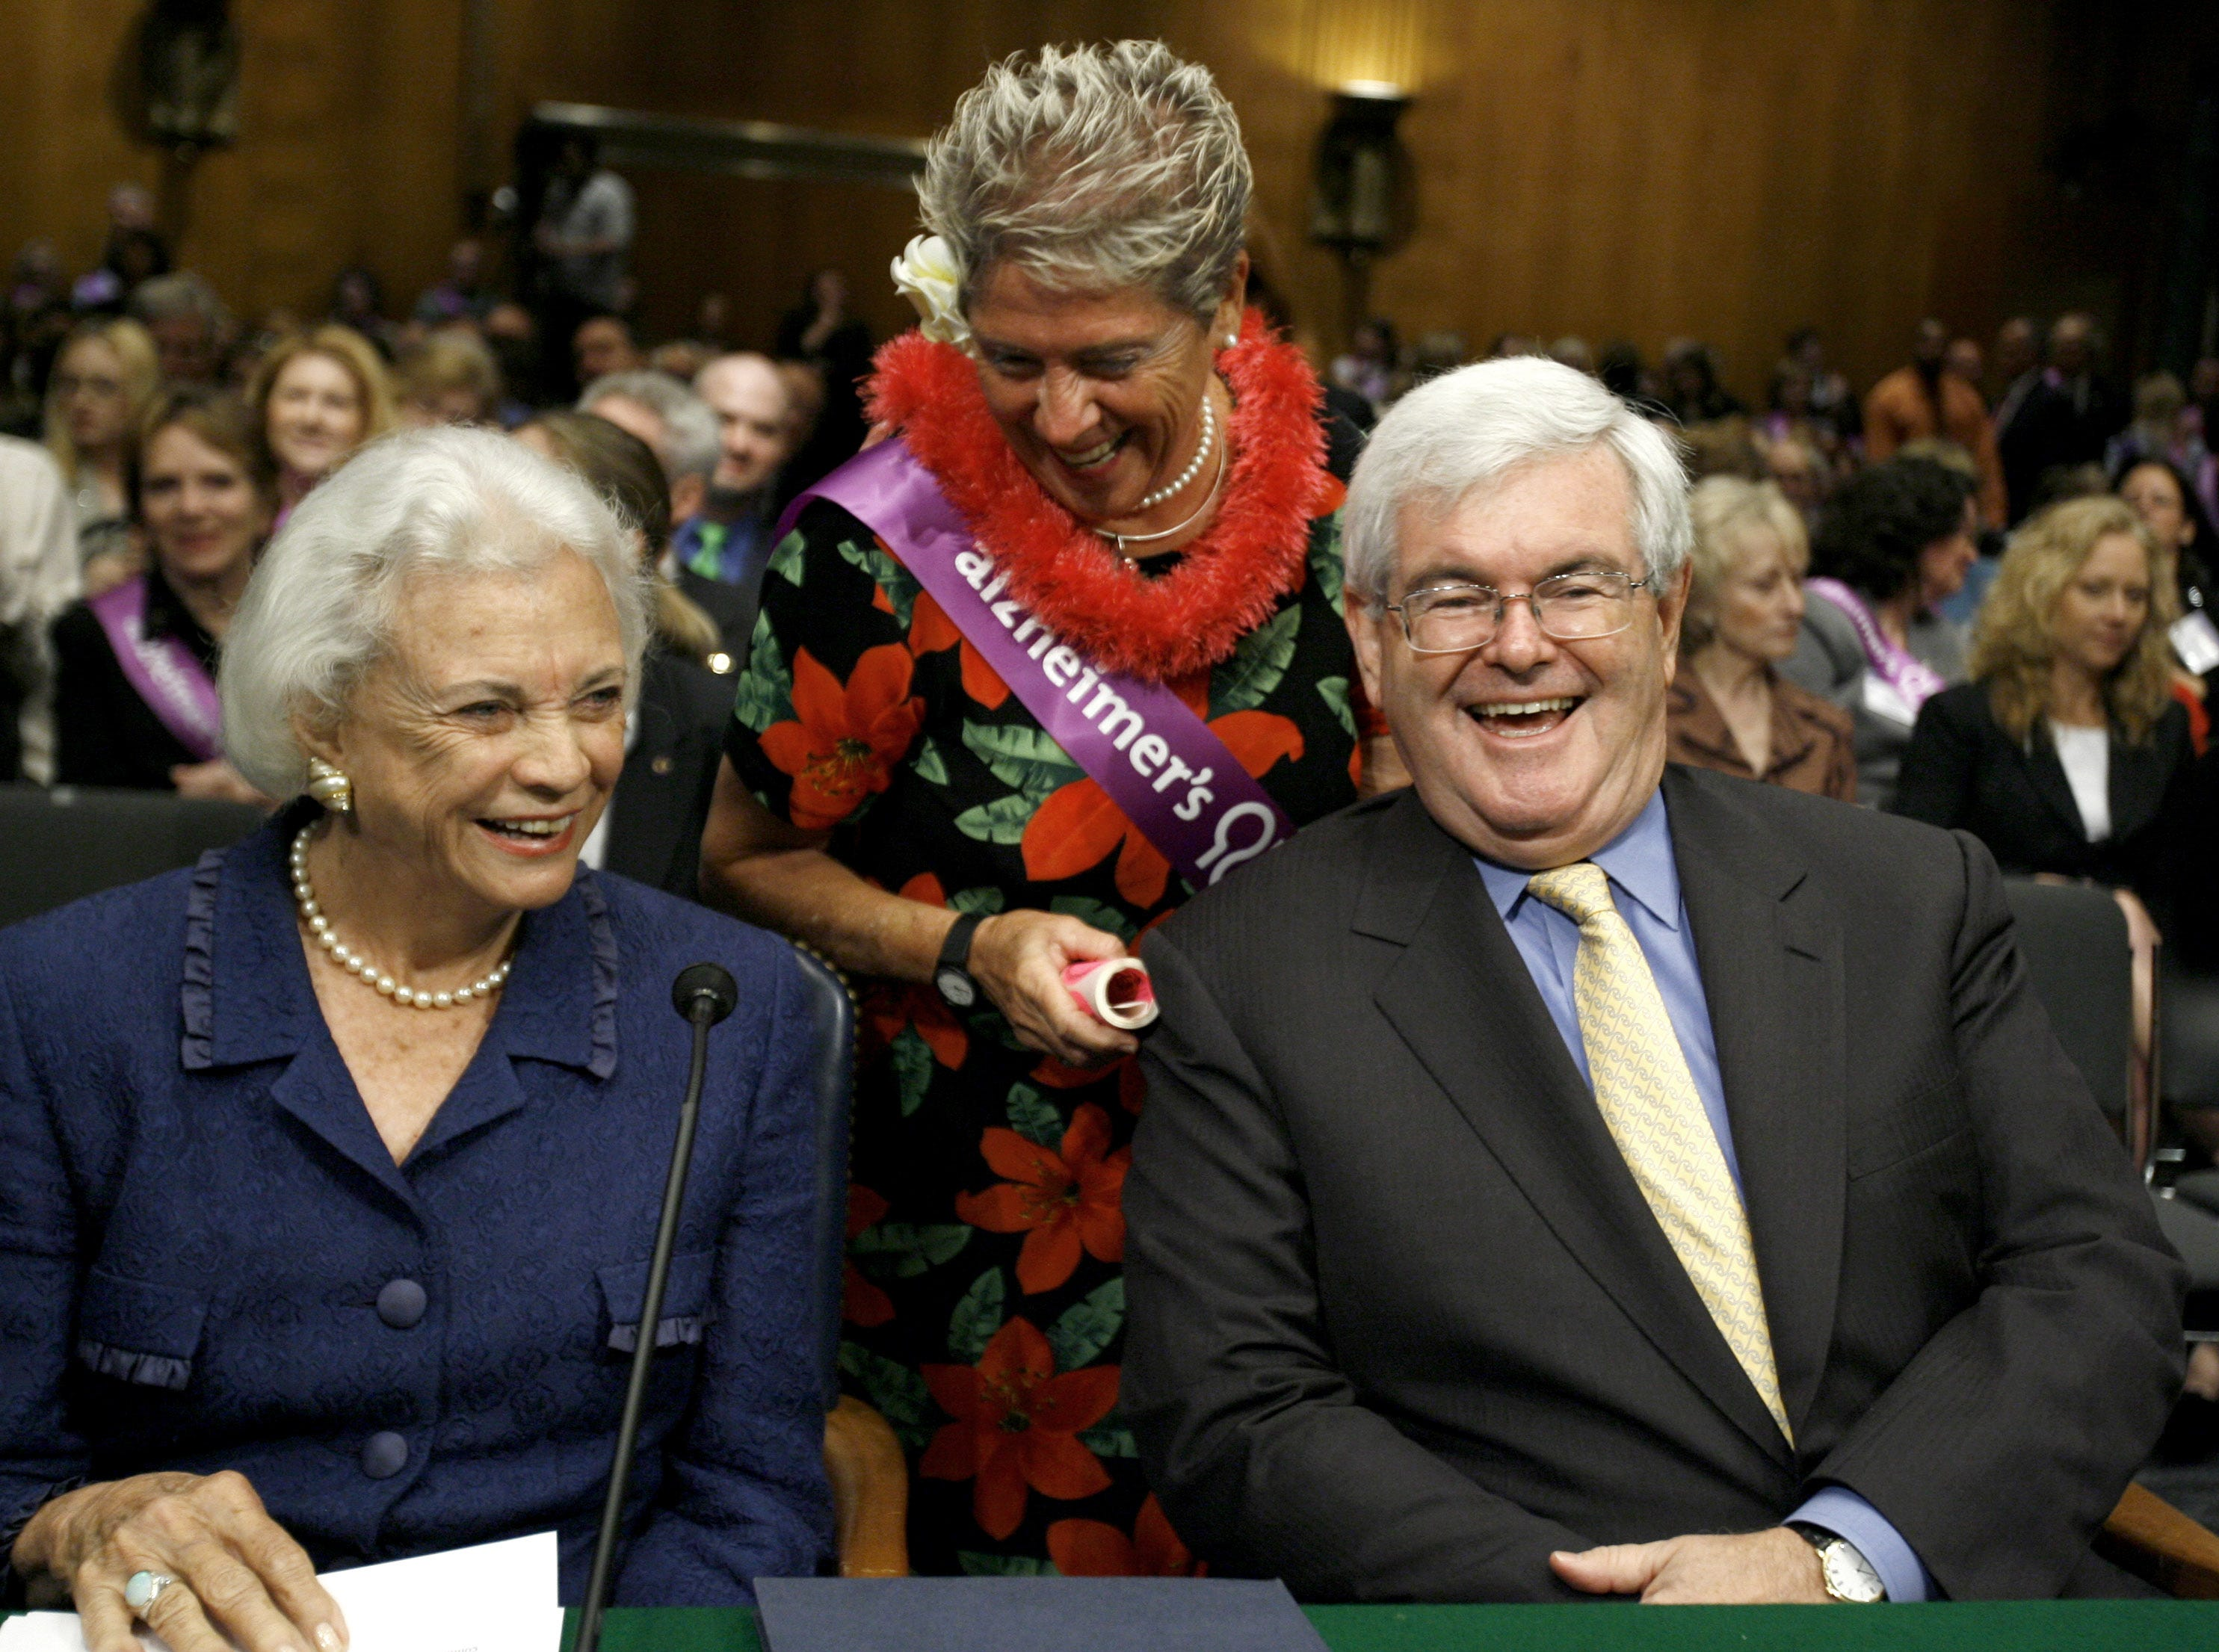 Former Supreme Court Justice Sandra Day O'Connor, left, and former House Speaker Newt Gingrich, right, share a laugh with Alzheimer's Association member Adele Rugg from Hawaii, Wednesday, May 14, 2008, on Capitol Hill in Washington, prior to the start of the Senate Special Committee on Aging hearing on Alzheimer's disease.